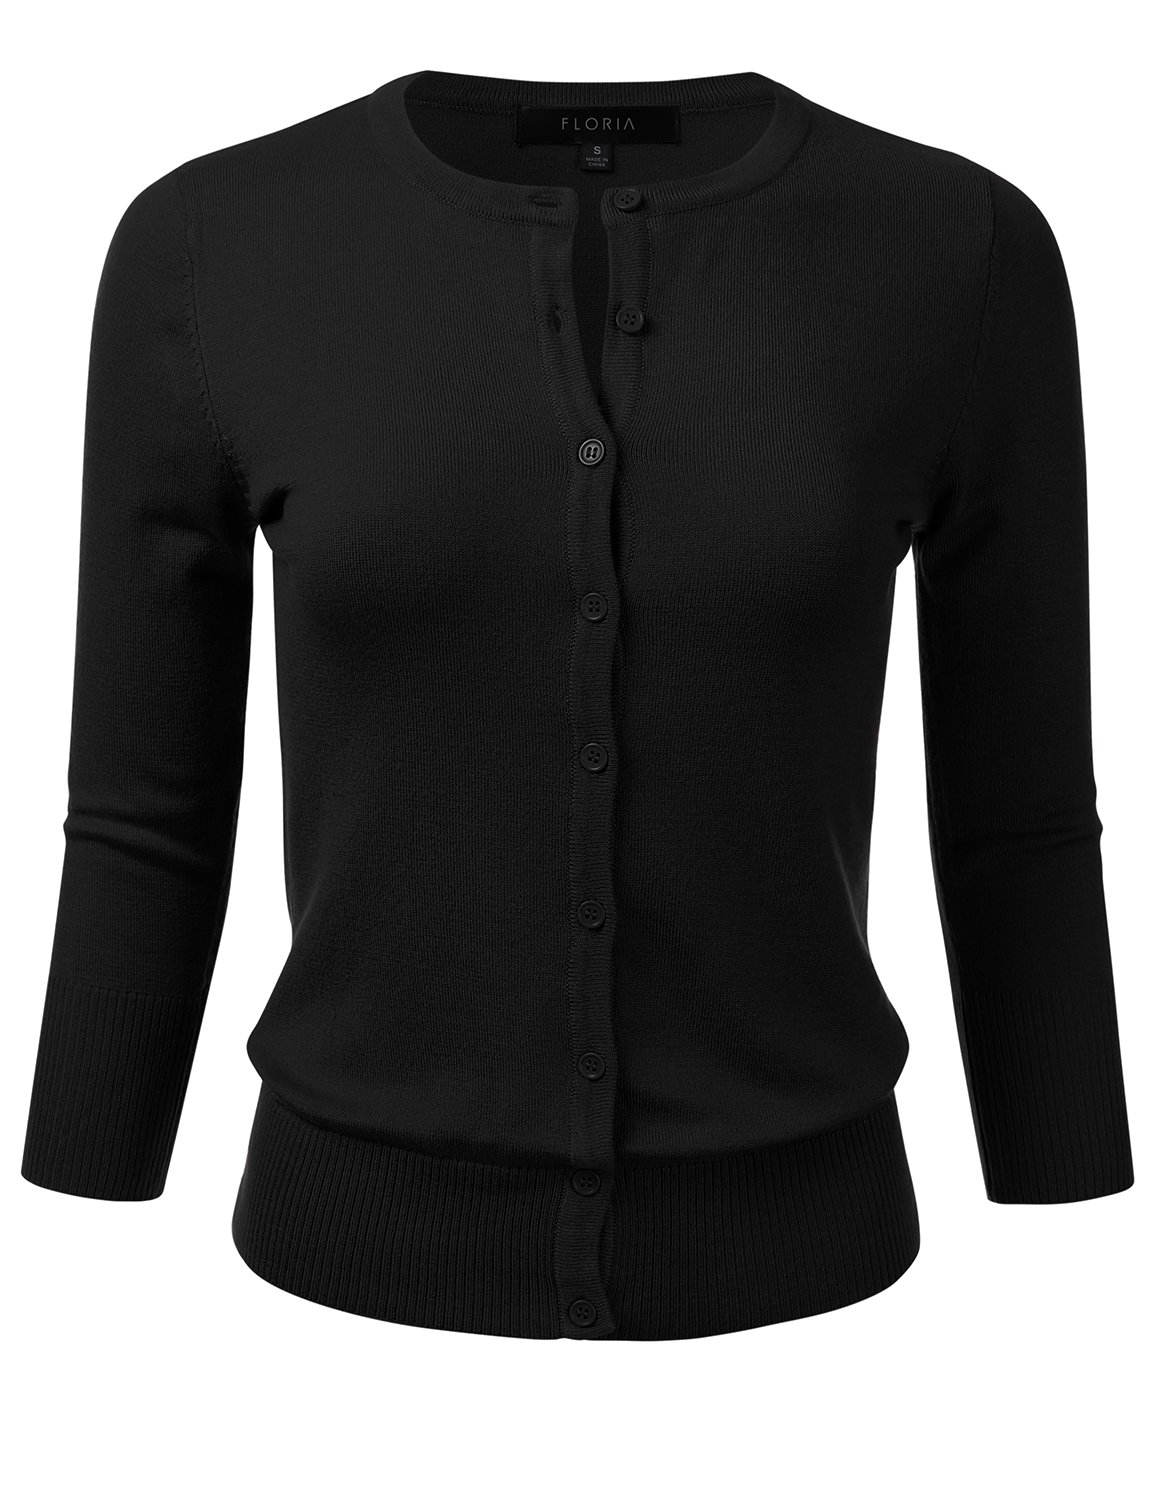 FLORIA Womens Button Down 3/4 Sleeve Crew Neck Knit Cardigan Sweater Black L